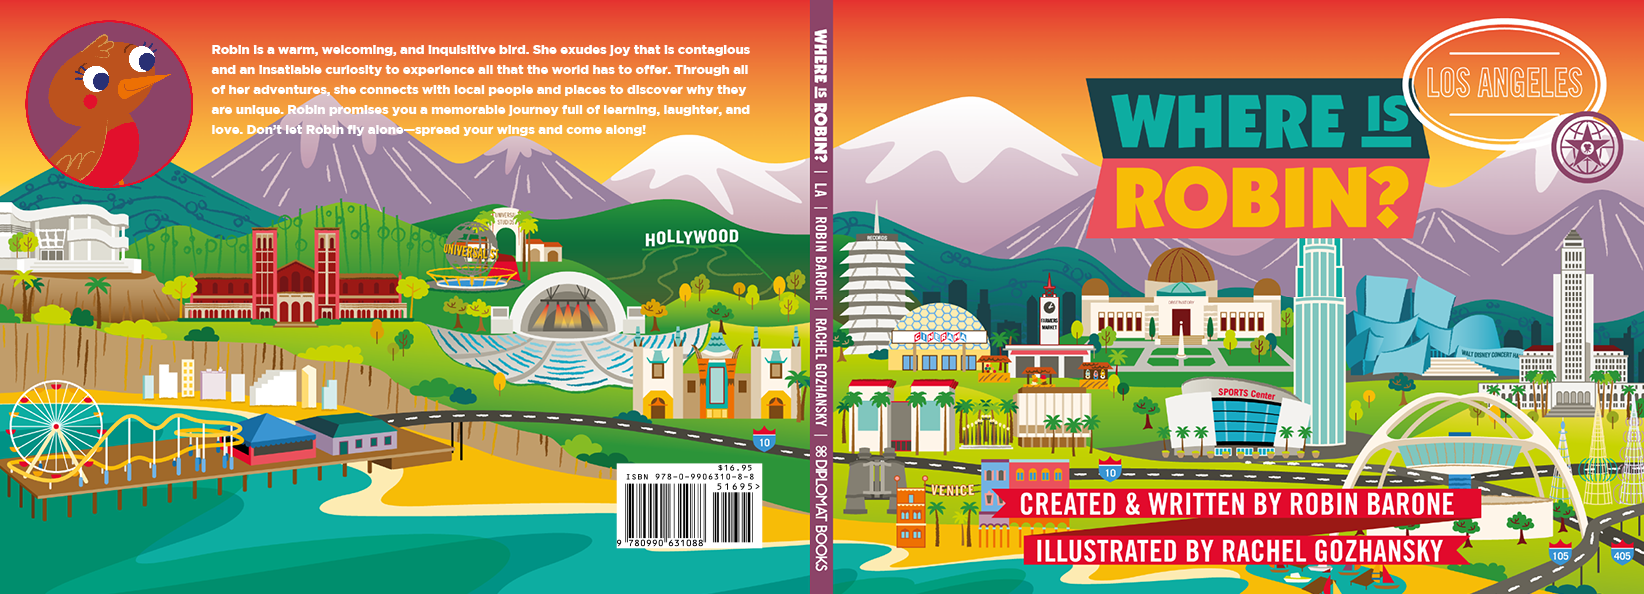 the front and back cover of Where Is Robin? Los Angeles; publication date Feb 2018